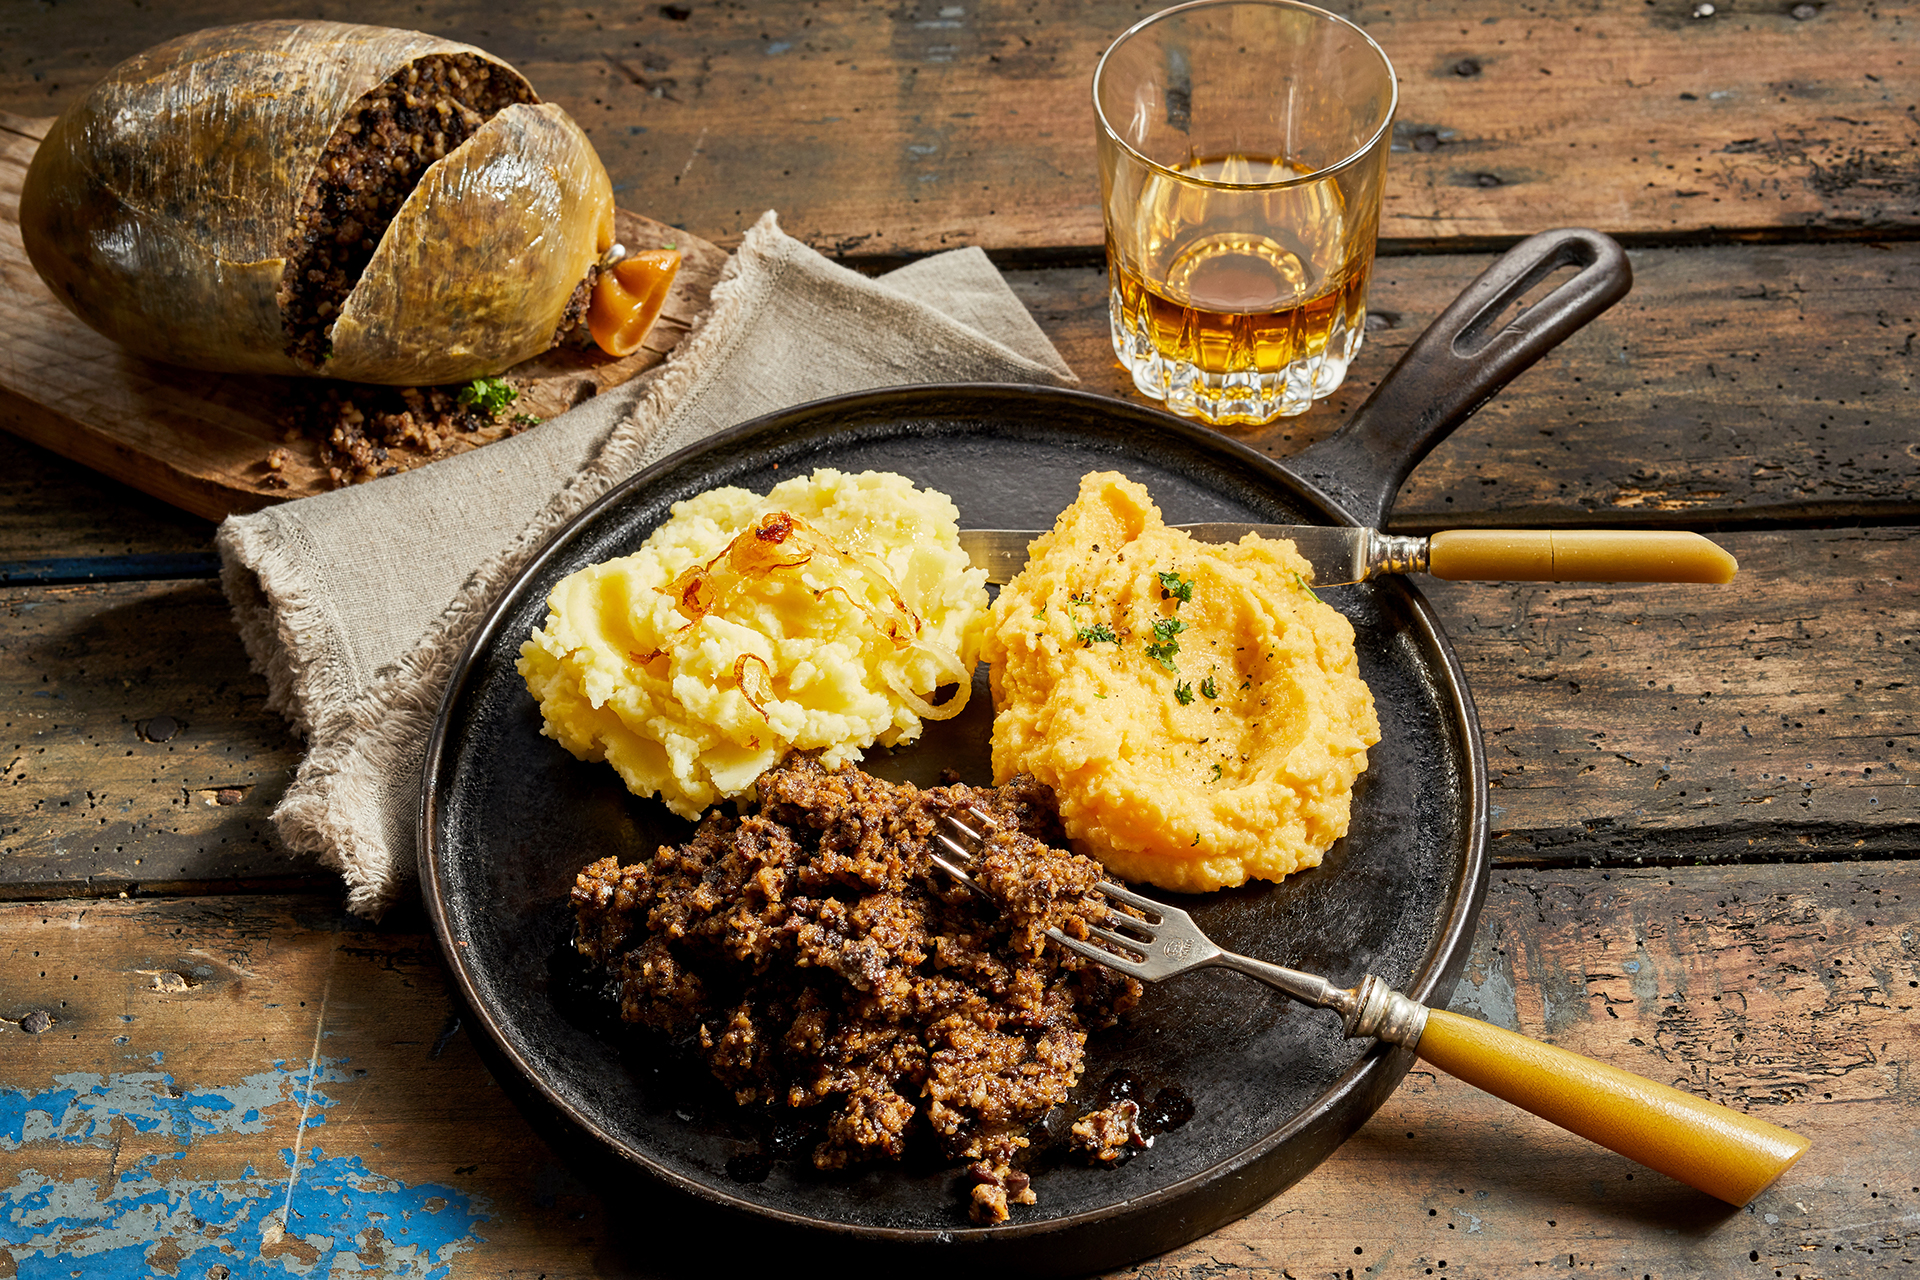 Rustic meal of haggis, neeps and tatties served with a tumbler of whisky to celebrate Robert Burns Supper in a high angle view